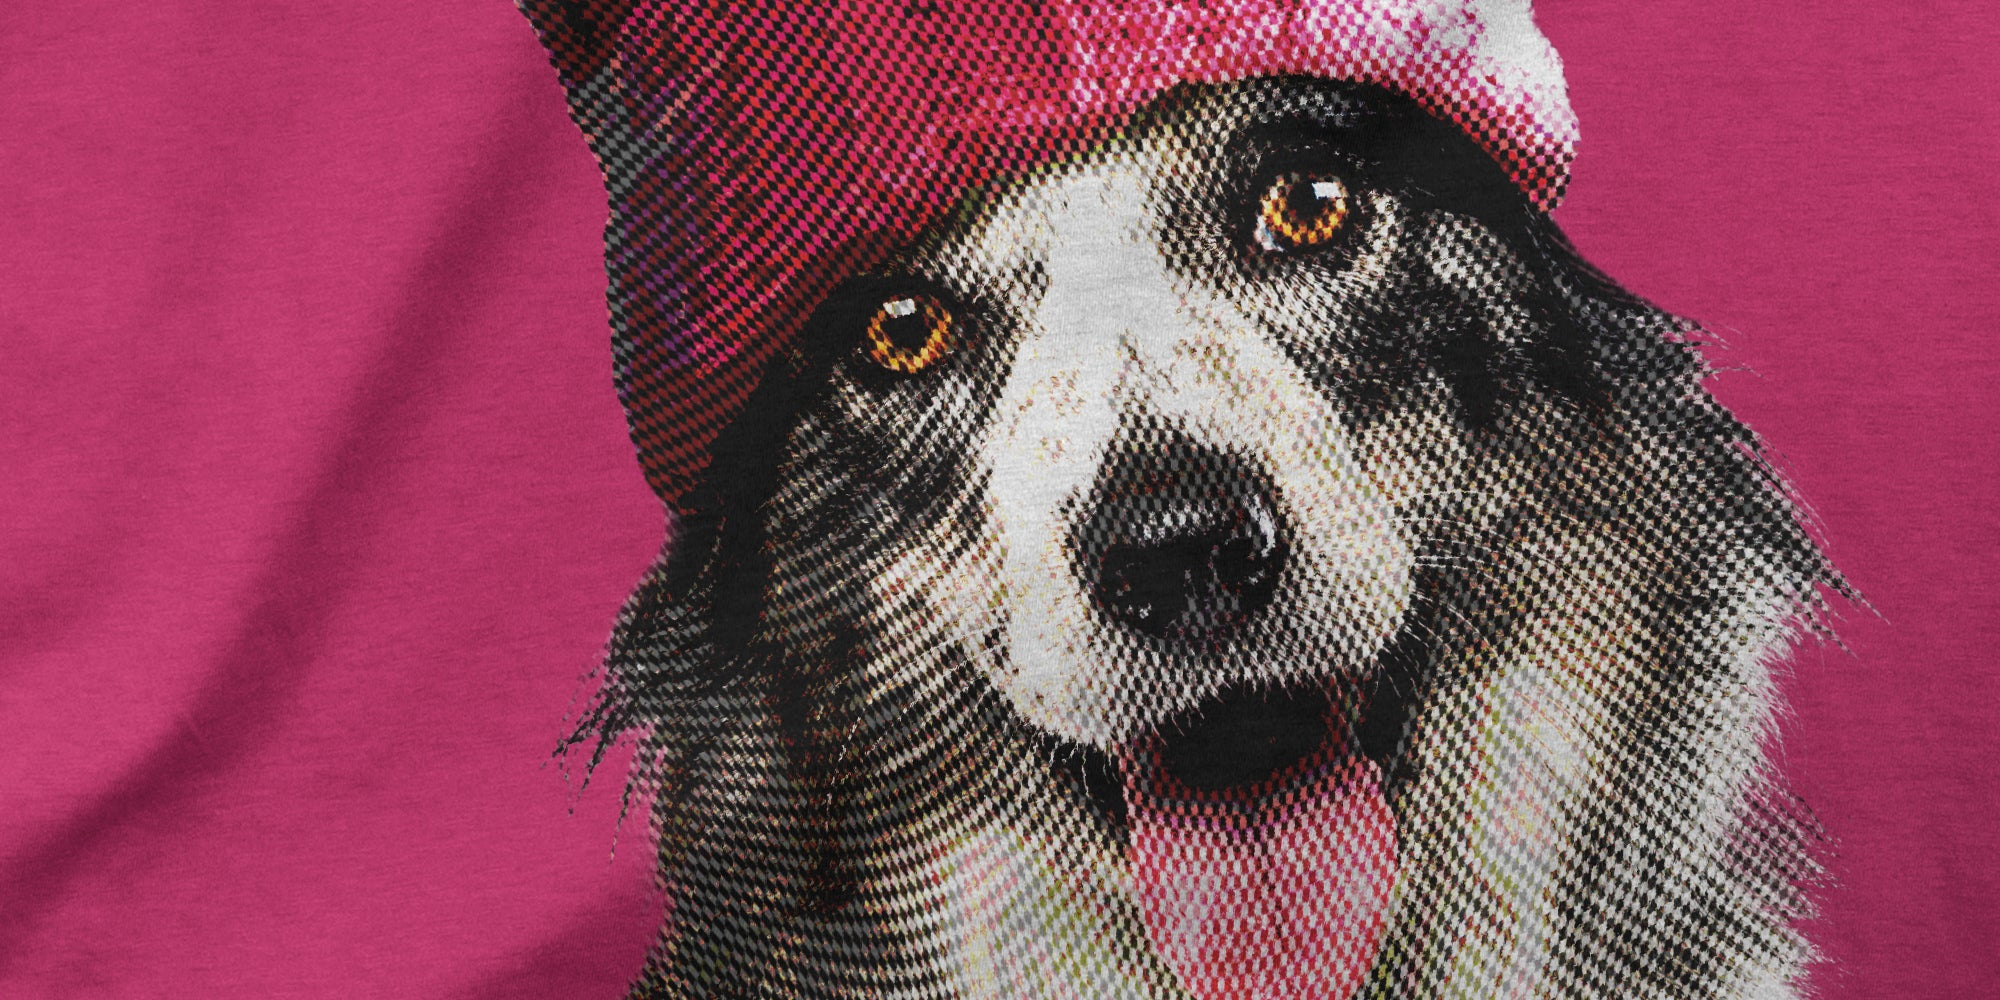 resistance collie design detail